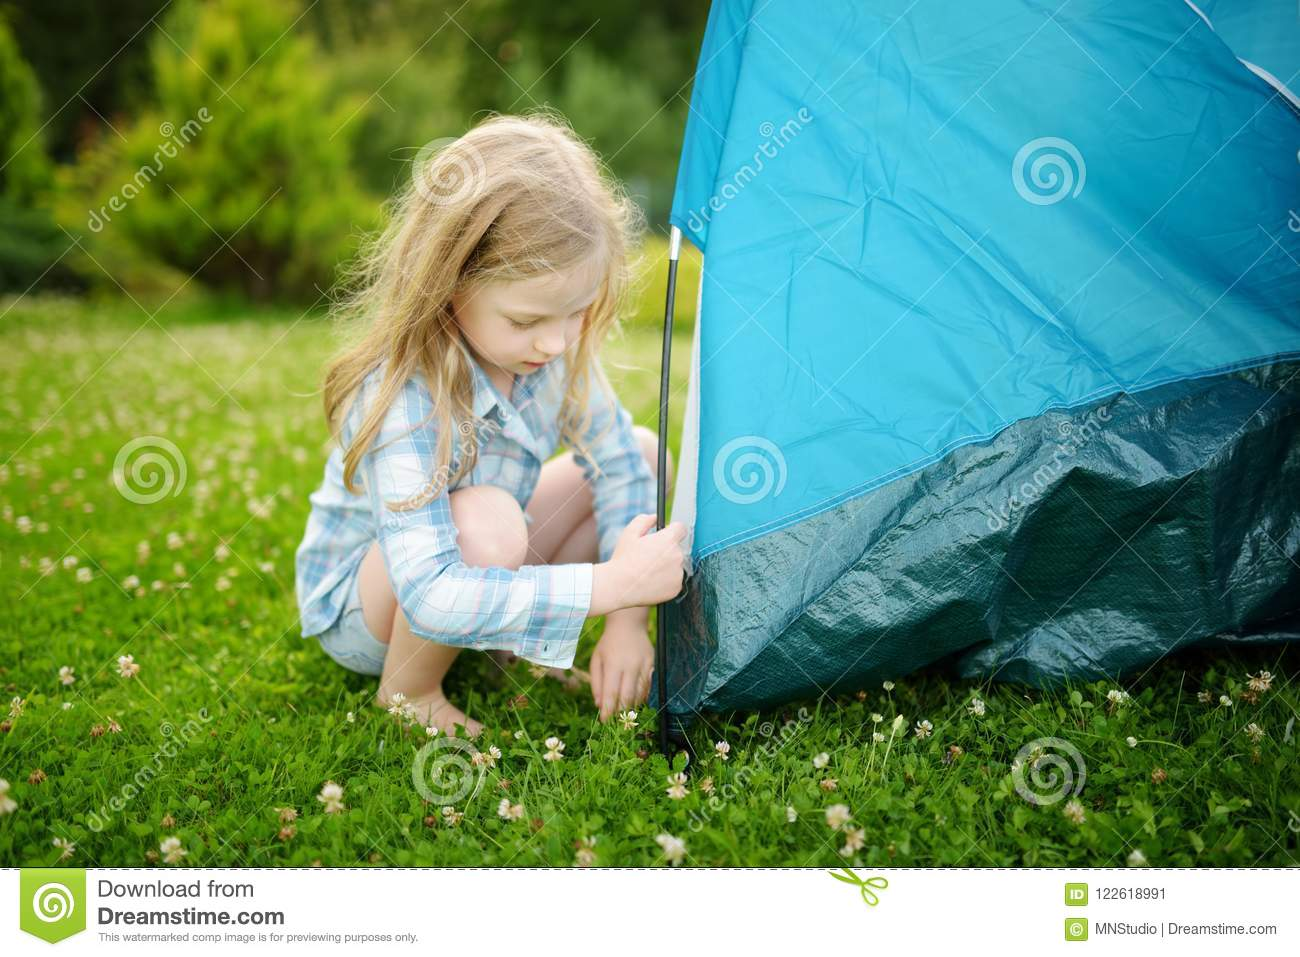 Cute little girl helping her parents to set up a tent on a campsite.